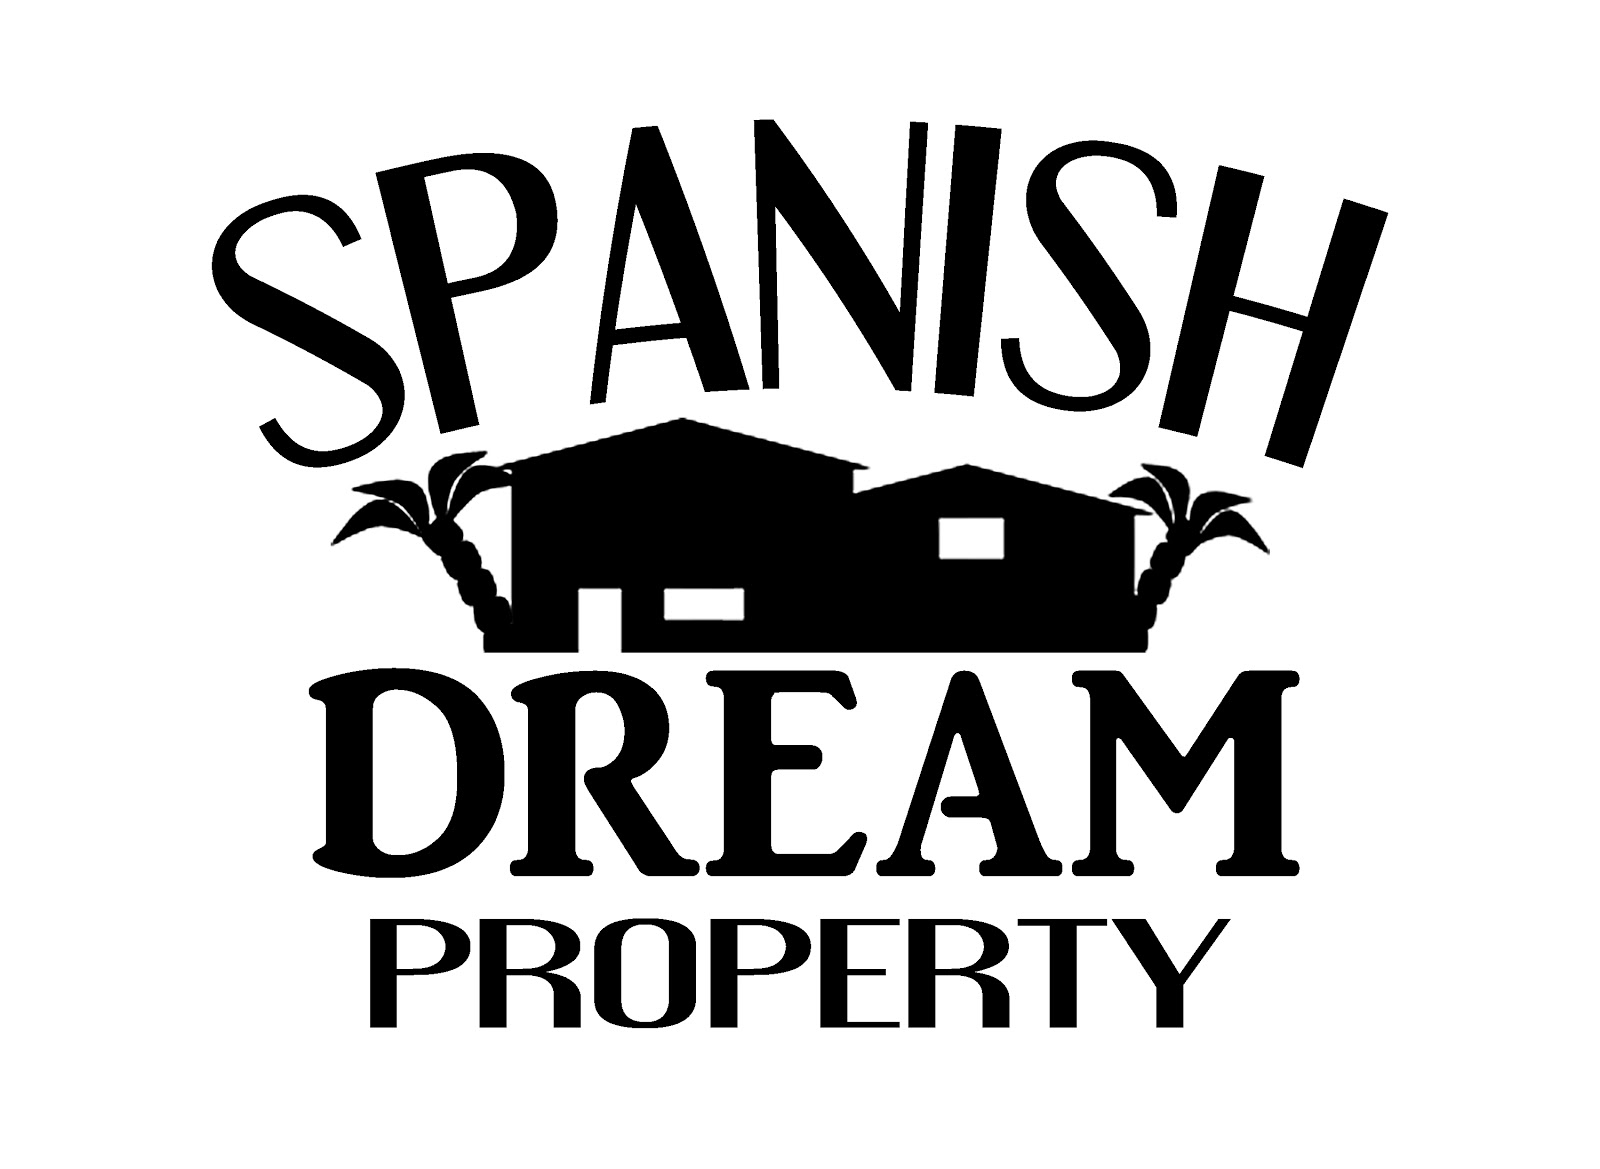 Spanish Dream Property: Any Questions